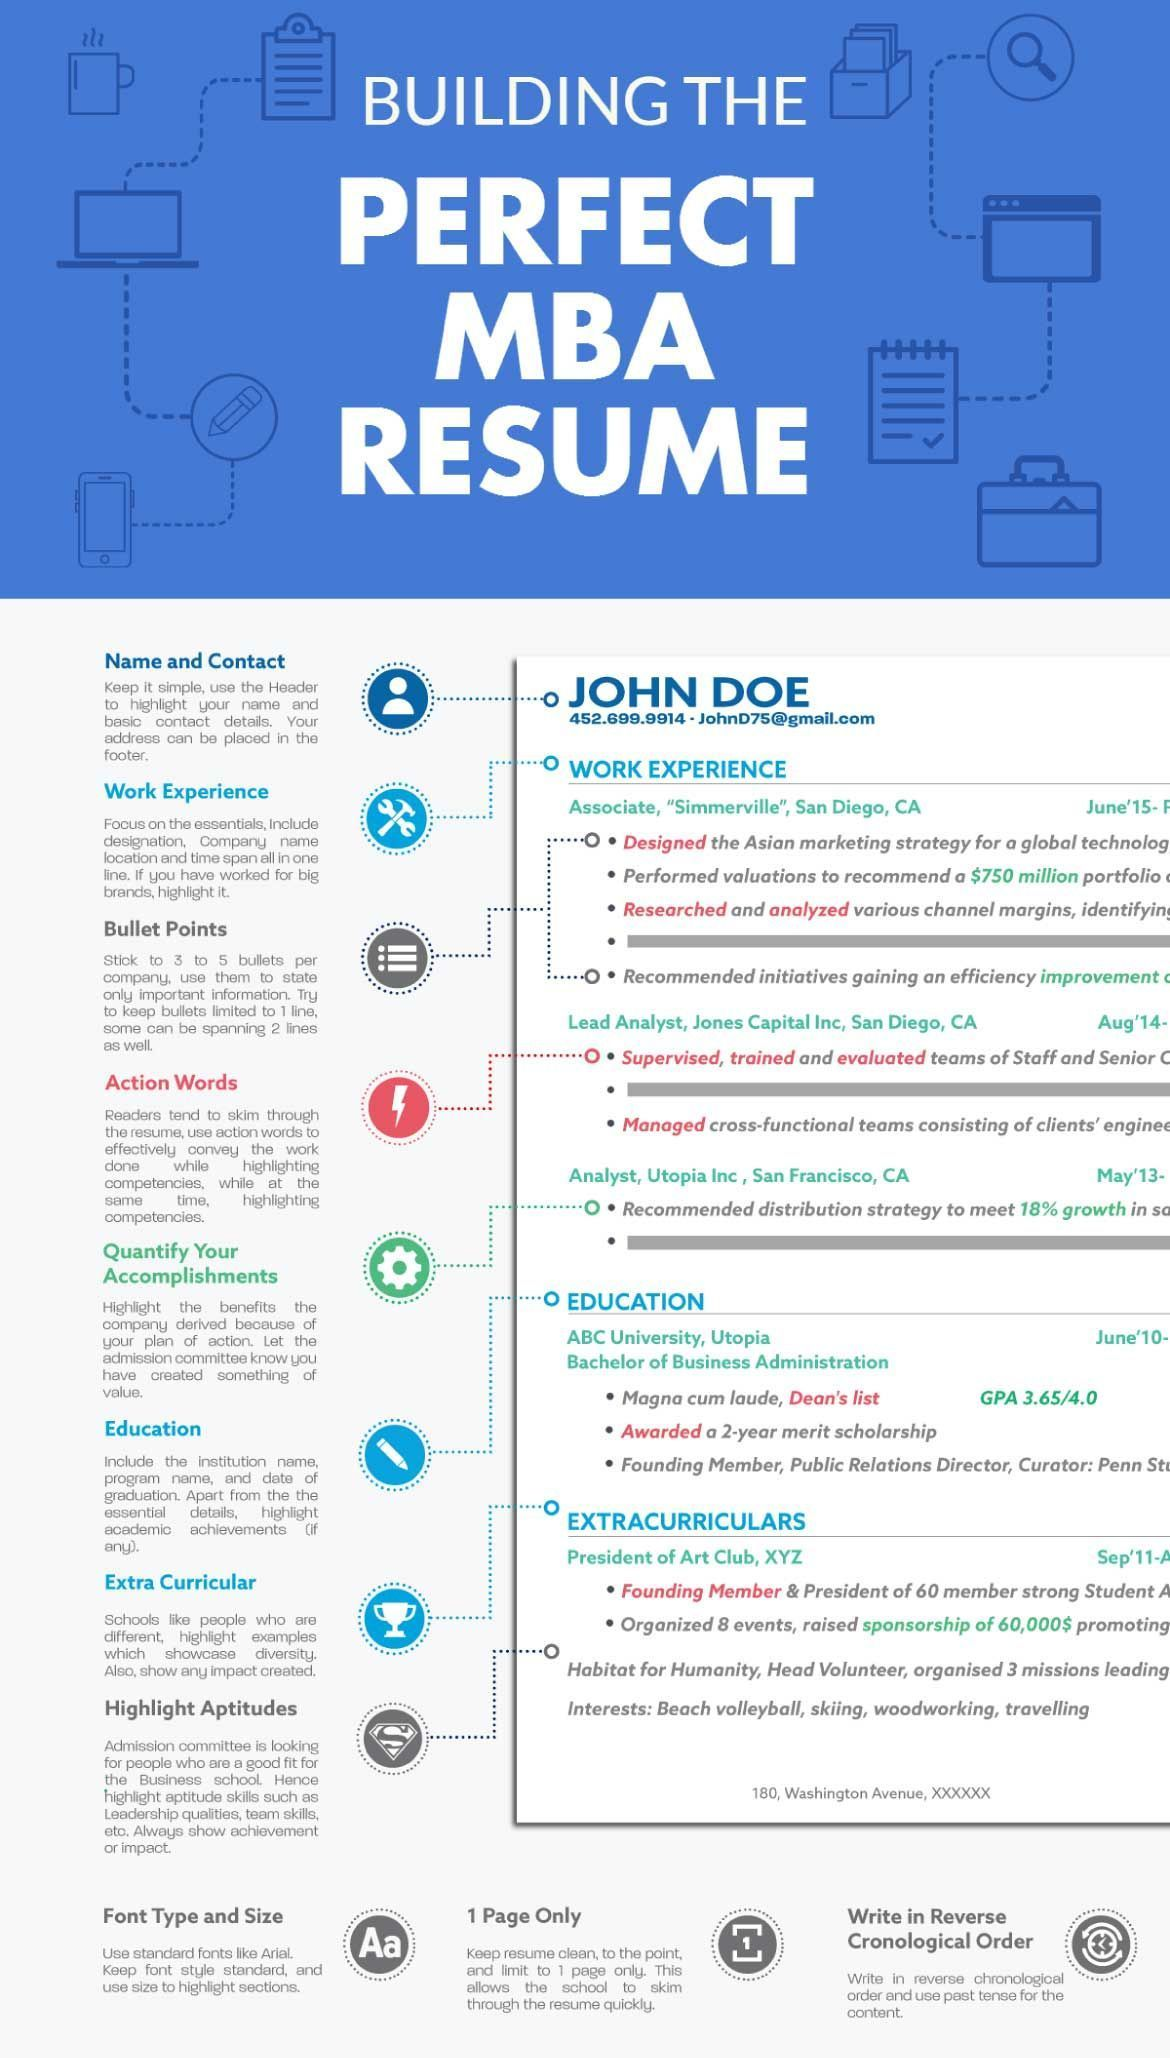 Steps Towards Creating The Perfect Mba Resume Infographic